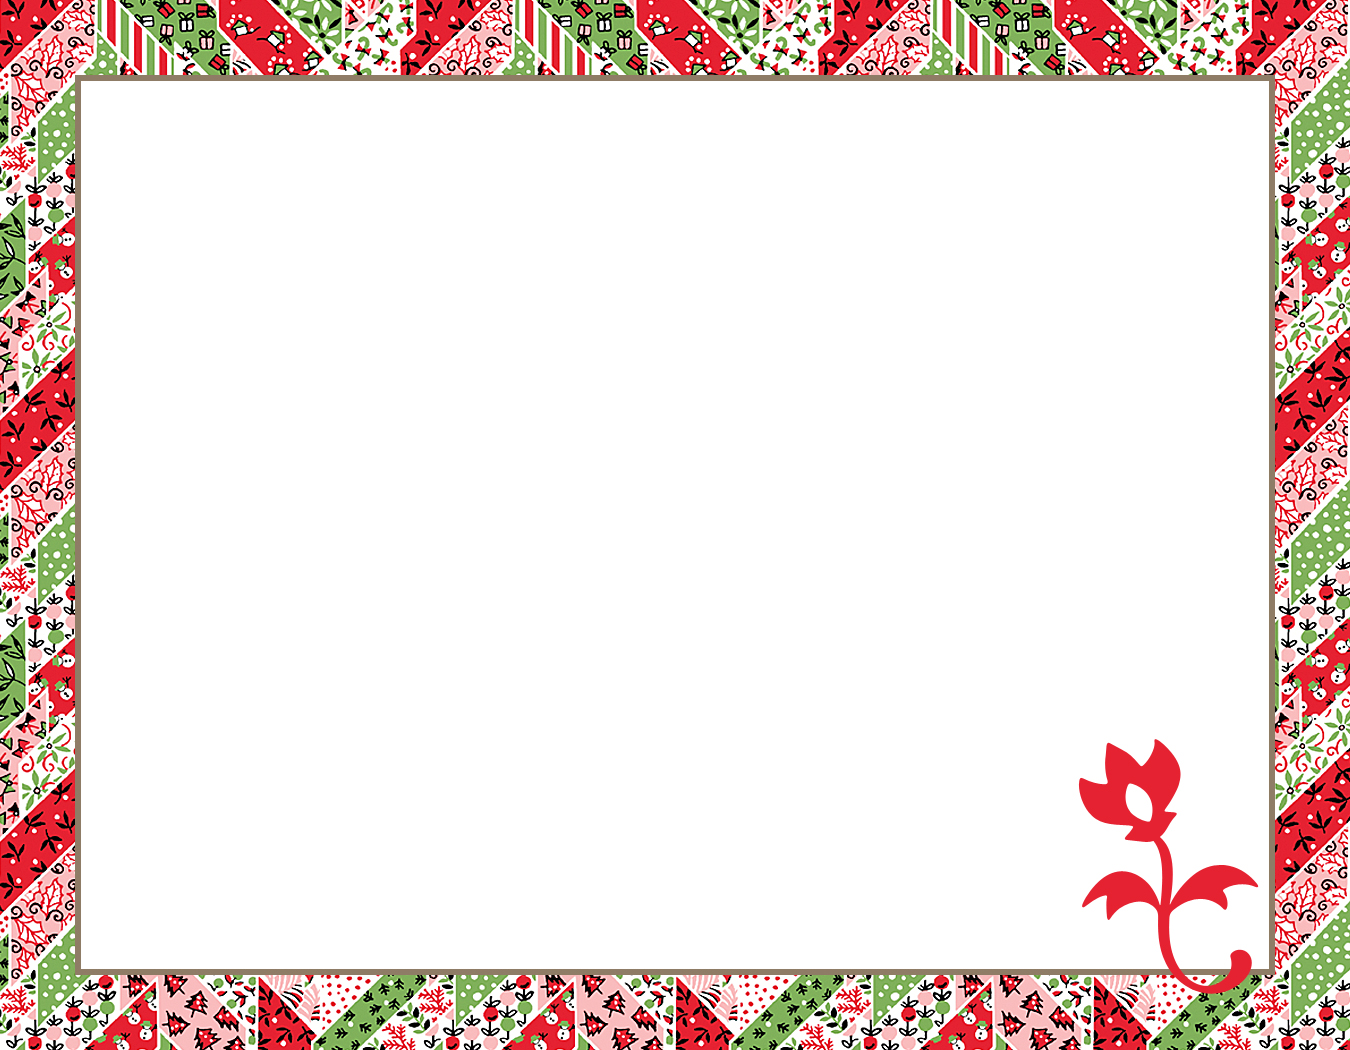 Free download Clipart Border Wallpaper Picture [1350x1050.